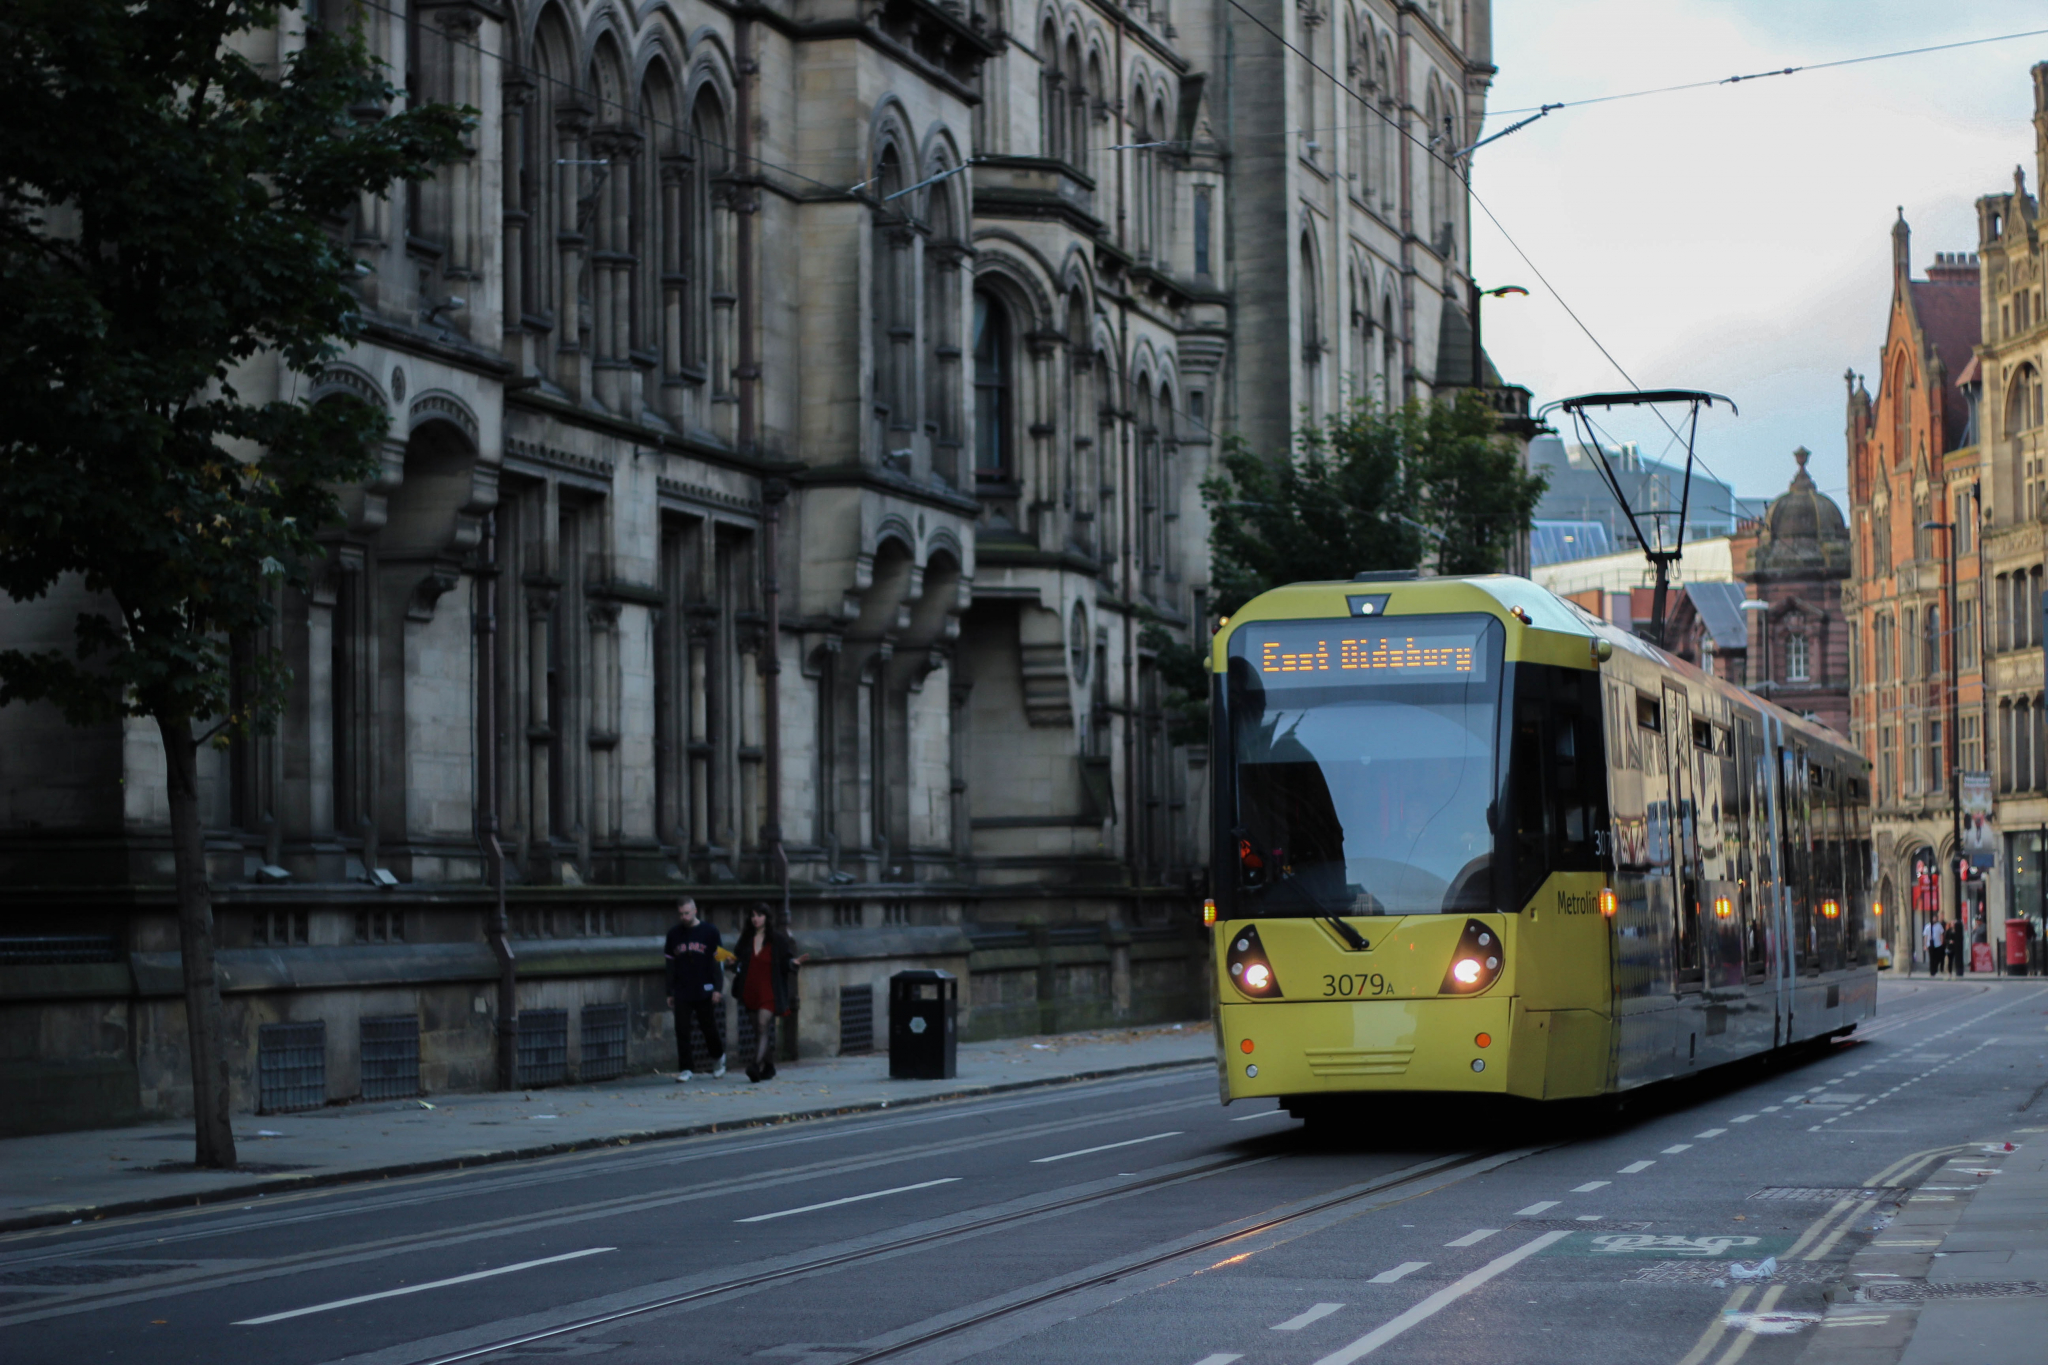 Street with tram in Manchester